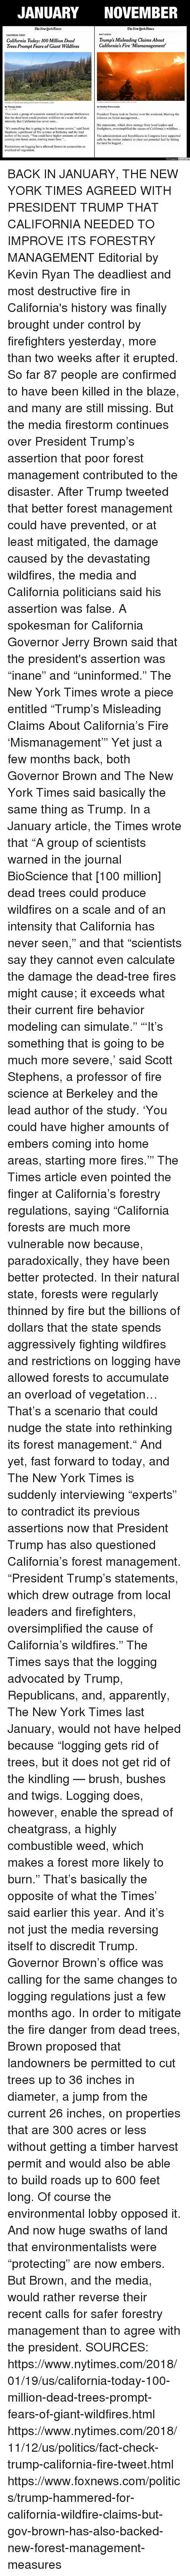 "Fact Check: JANUARY NOVEMBER  TheAew JJork Eimes  TheAewJjorkTimes  FACT CHECK  CALIFORNIA TODAY  California Today: 100 Million Dead  Trees Prompt Fears of Giant Wildfires  Trump's Misleading Claims About  California's Fire Mismanagement'  Patches of dead and dying trees near Cressman, Calif  By Thomas Fuller  lan. 19, 2018  By Kendra Pierre-Louis  This week a group of scientists warned in the journal BioScience President Trump took to Twitter over the weekend, blaming the  that the dead trees could produce wildfires on a scale and of an  infernos on forest management...  intensity that California has never seen  Stephens, a professor of fire science at Berkeley and the lead  coming into home areas, starting more fires.""..  Restrictions on logging have allowed forests to accumulate an  His statements, which drew outrage from local leaders and  It's something that is going to be much more severe,"" said Scott firefighters, oversimplified the causes of California's wildfires...  author of the study. ""You could have higher amounts of embers The administration and Republicans in Congress have supported  calls by the timber industry to clear out potential fuel by letting  the land be logged...  overload of vegetation.  Unbiased Amer BACK IN JANUARY, THE NEW YORK TIMES AGREED WITH PRESIDENT TRUMP THAT CALIFORNIA NEEDED TO IMPROVE ITS FORESTRY MANAGEMENT  Editorial by Kevin Ryan  The deadliest and most destructive fire in California's history was finally brought under control by firefighters yesterday, more than two weeks after it erupted.  So far 87 people are confirmed to have been killed in the blaze, and many are still missing.  But the media firestorm continues over President Trump's assertion that poor forest management contributed to the disaster.  After Trump tweeted that better forest management could have prevented, or at least mitigated, the damage caused by the devastating wildfires, the media and California politicians said his assertion was false.  A spokesman for California Governor Jerry Brown said that the president's assertion was ""inane"" and ""uninformed.""  The New York Times wrote a piece entitled ""Trump's Misleading Claims About California's Fire 'Mismanagement'""  Yet just a few months back, both Governor Brown and The New York Times said basically the same thing as Trump.  In a January article, the Times wrote that ""A group of scientists warned in the journal BioScience that [100 million] dead trees could produce wildfires on a scale and of an intensity that California has never seen,"" and that ""scientists say they cannot even calculate the damage the dead-tree fires might cause; it exceeds what their current fire behavior modeling can simulate.""  ""'It's something that is going to be much more severe,' said Scott Stephens, a professor of fire science at Berkeley and the lead author of the study. 'You could have higher amounts of embers coming into home areas, starting more fires.'""  The Times article even pointed the finger at California's forestry regulations, saying ""California forests are much more vulnerable now because, paradoxically, they have been better protected. In their natural state, forests were regularly thinned by fire but the billions of dollars that the state spends aggressively fighting wildfires and restrictions on logging have allowed forests to accumulate an overload of vegetation… That's a scenario that could nudge the state into rethinking its forest management.""  And yet, fast forward to today, and The New York Times is suddenly interviewing ""experts"" to contradict its previous assertions now that President Trump has also questioned California's forest management.  ""President Trump's statements, which drew outrage from local leaders and firefighters, oversimplified the cause of California's wildfires."" The Times says that the logging advocated by Trump, Republicans, and, apparently, The New York Times last January, would not have helped because ""logging gets rid of trees, but it does not get rid of the kindling — brush, bushes and twigs. Logging does, however, enable the spread of cheatgrass, a highly combustible weed, which makes a forest more likely to burn.""  That's basically the opposite of what the Times' said earlier this year.  And it's not just the media reversing itself to discredit Trump.  Governor Brown's office was calling for the same changes to logging regulations just a few months ago.  In order to mitigate the fire danger from dead trees, Brown proposed that landowners be permitted to cut trees up to 36 inches in diameter, a jump from the current 26 inches, on properties that are 300 acres or less without getting a timber harvest permit and would also be able to build roads up to 600 feet long.  Of course the environmental lobby opposed it.  And now huge swaths of land that environmentalists were ""protecting"" are now embers.  But Brown, and the media, would rather reverse their recent calls for safer forestry management than to agree with the president.    SOURCES: https://www.nytimes.com/2018/01/19/us/california-today-100-million-dead-trees-prompt-fears-of-giant-wildfires.html https://www.nytimes.com/2018/11/12/us/politics/fact-check-trump-california-fire-tweet.html https://www.foxnews.com/politics/trump-hammered-for-california-wildfire-claims-but-gov-brown-has-also-backed-new-forest-management-measures"